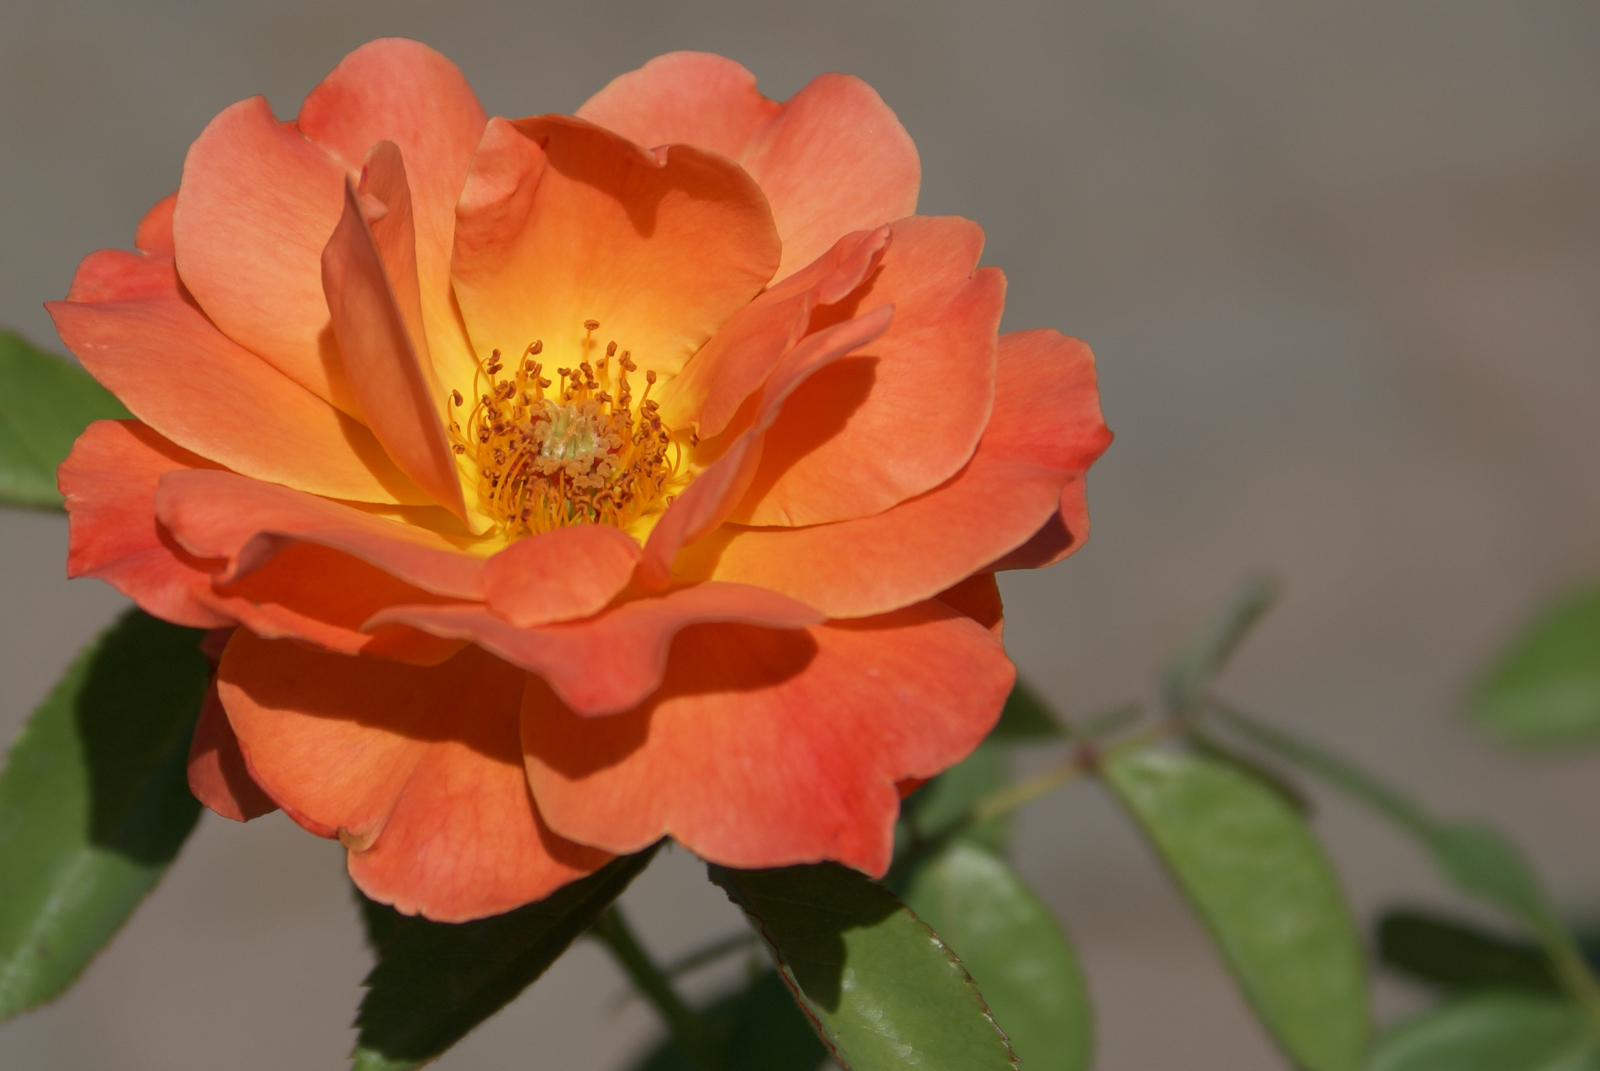 Rose Livin Easy Orange To Apricot With Yellow Center